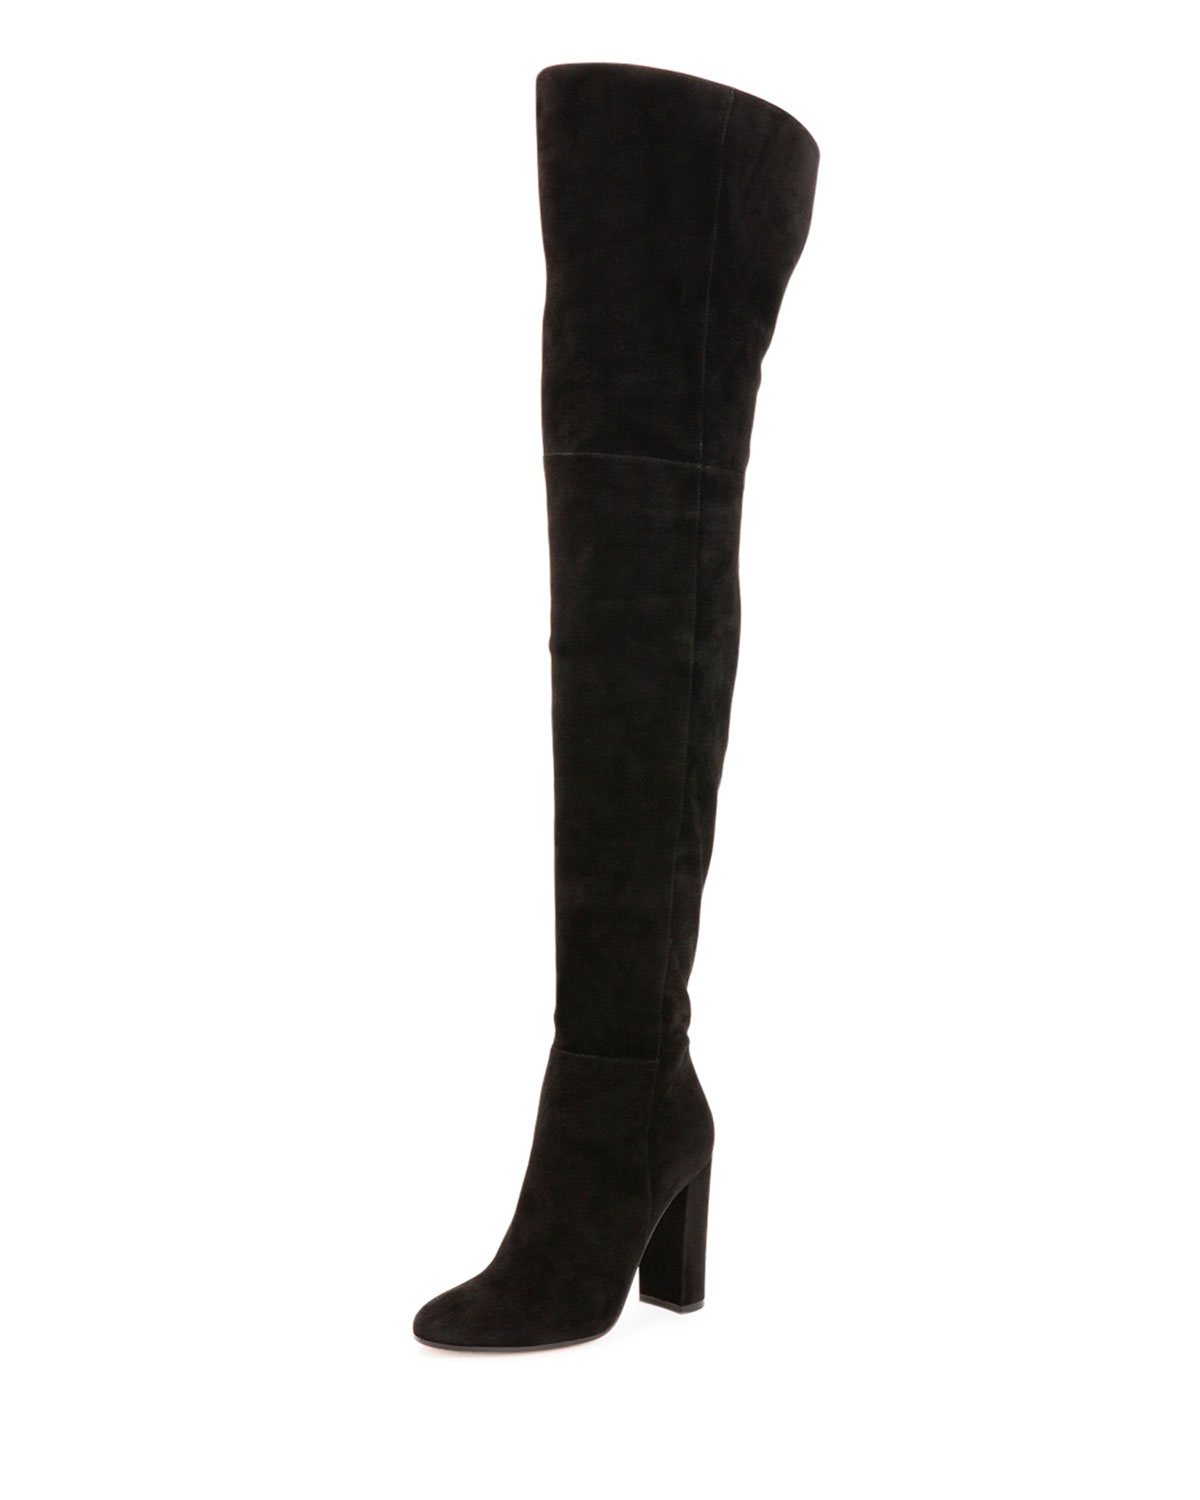 bb4c9ebbbb5 Gianvito Rossi Suede Over-the-Knee Boot